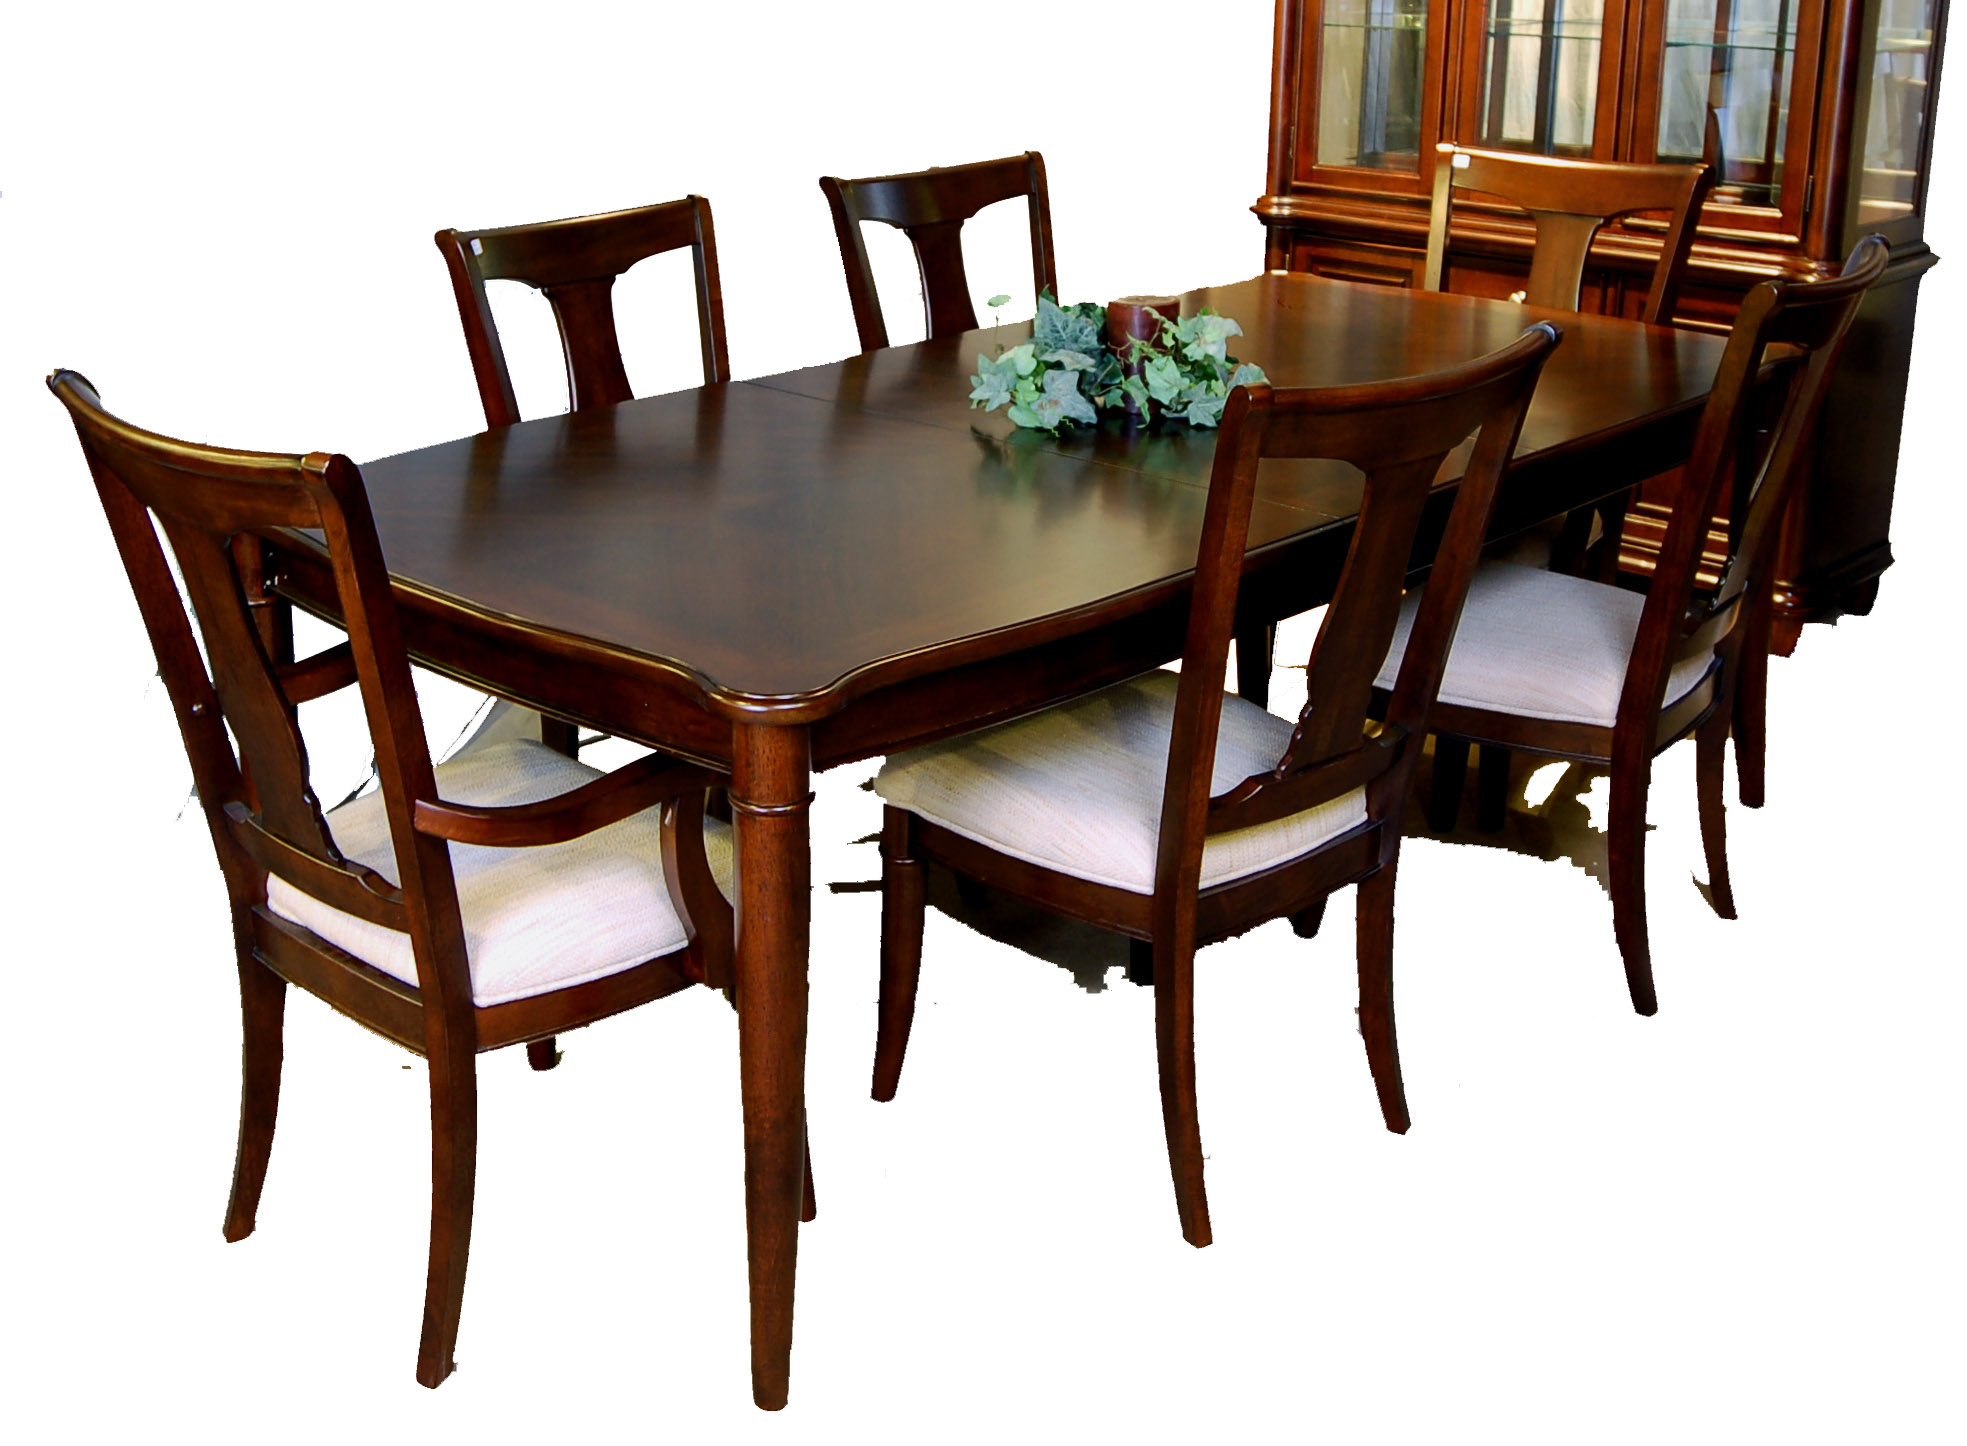 7 piece dining room table and chair set ebay for Breakfast table and chairs